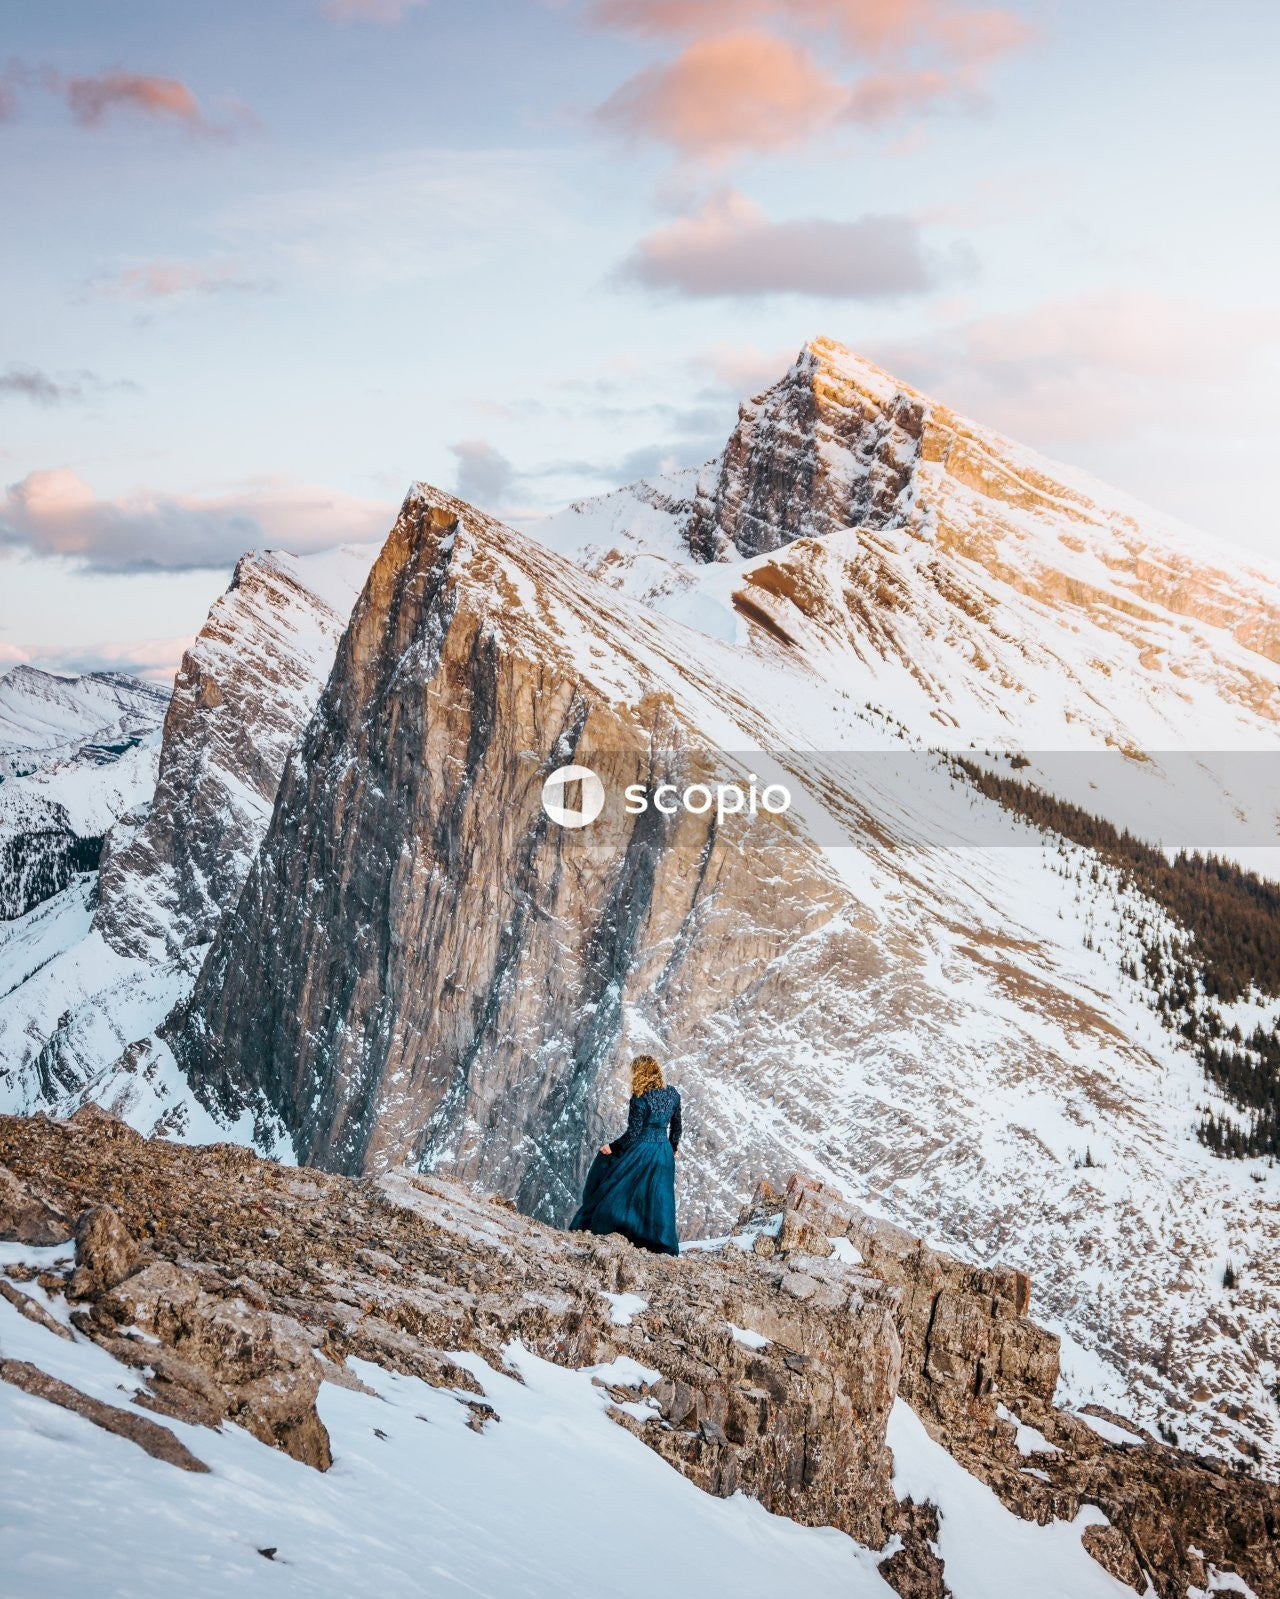 Person in blue jacket sitting on snow covered ground near snow covered mountain